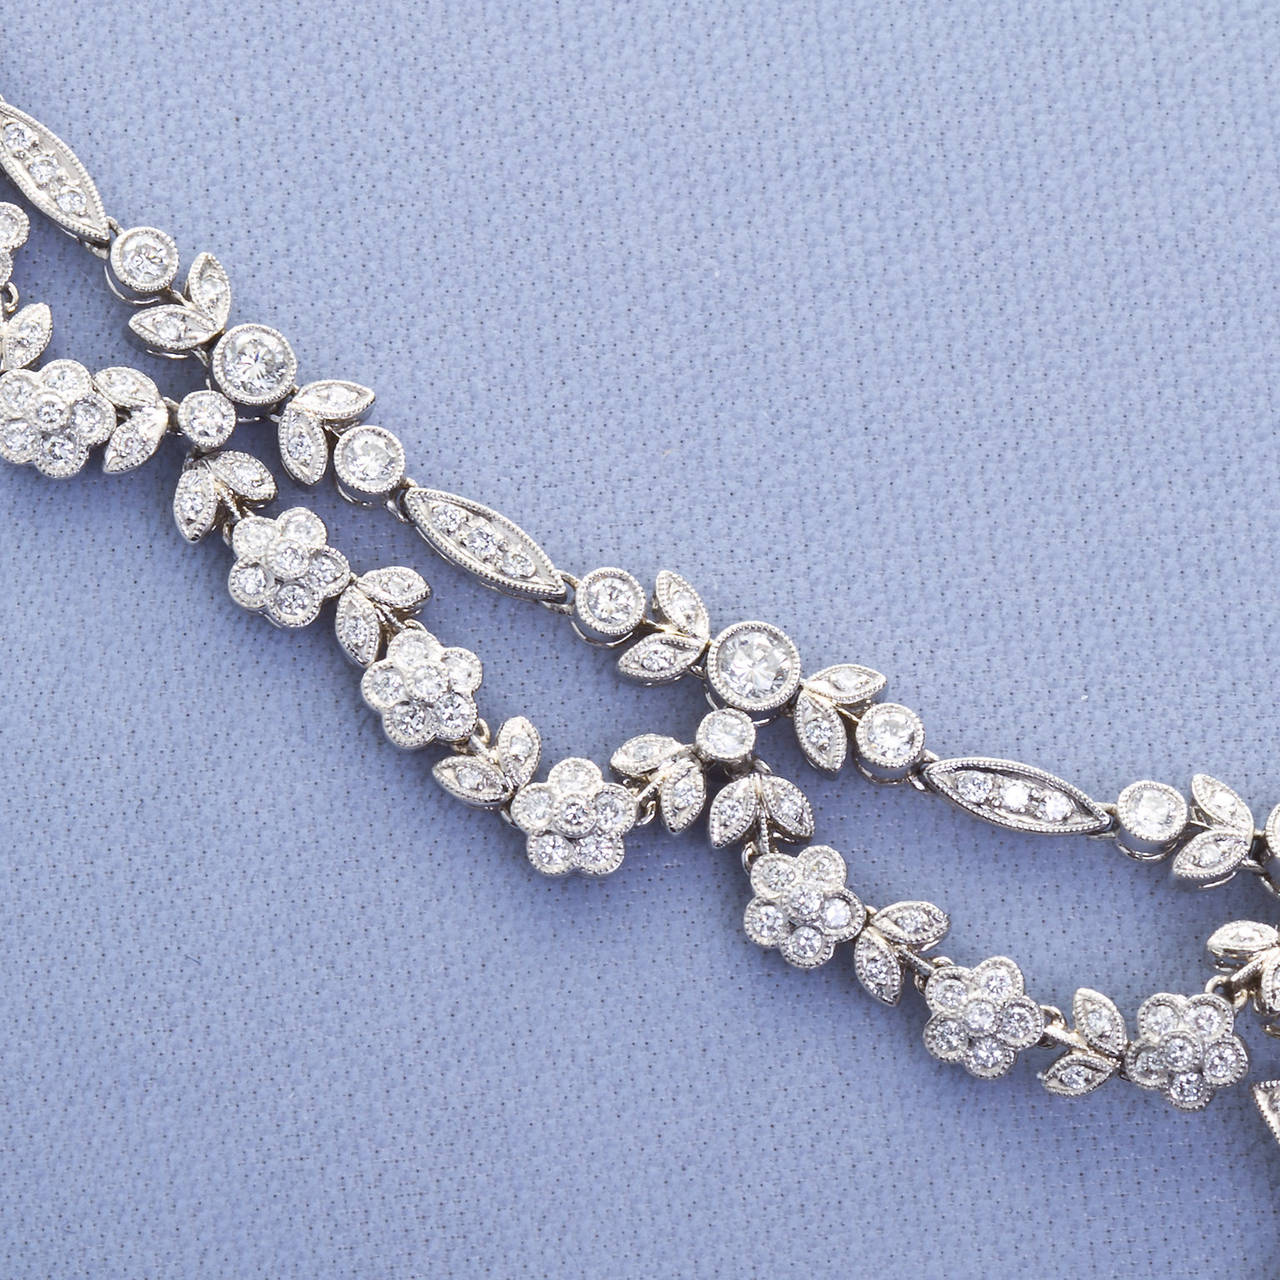 Antique 5.06 Carat Fancy Yellow Pear Shaped Diamond Drape Necklace In Good Condition For Sale In New York, NY